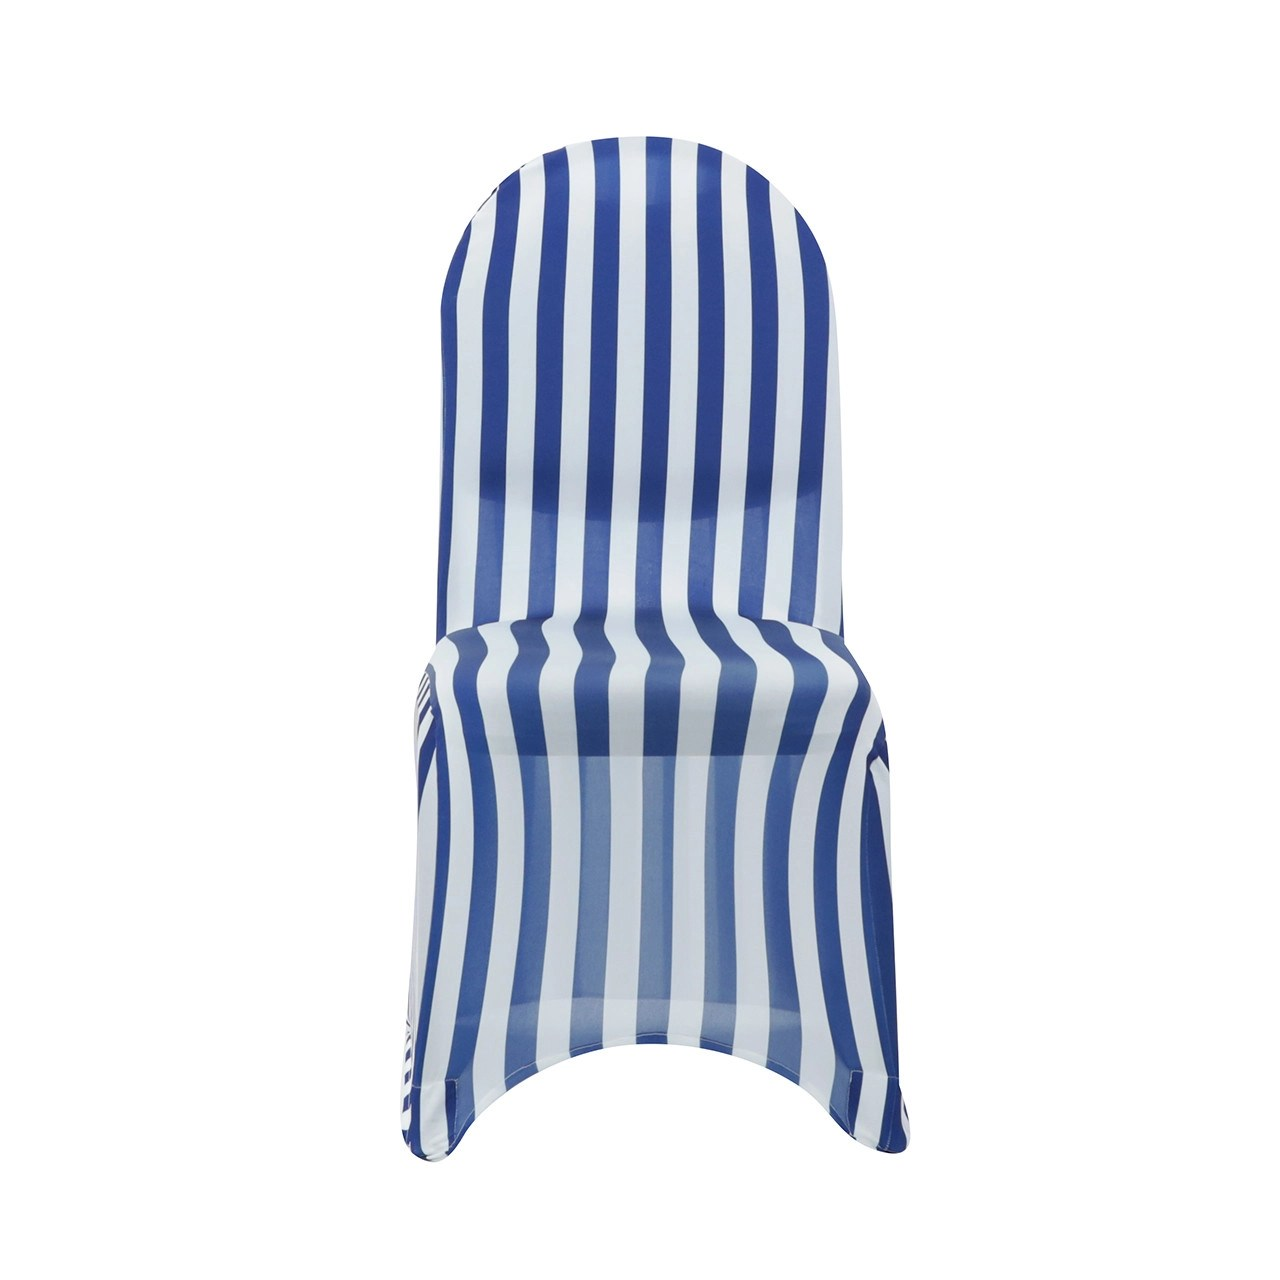 Blue And White Striped Chair Stretch Spandex Banquet Chair Cover Striped White And